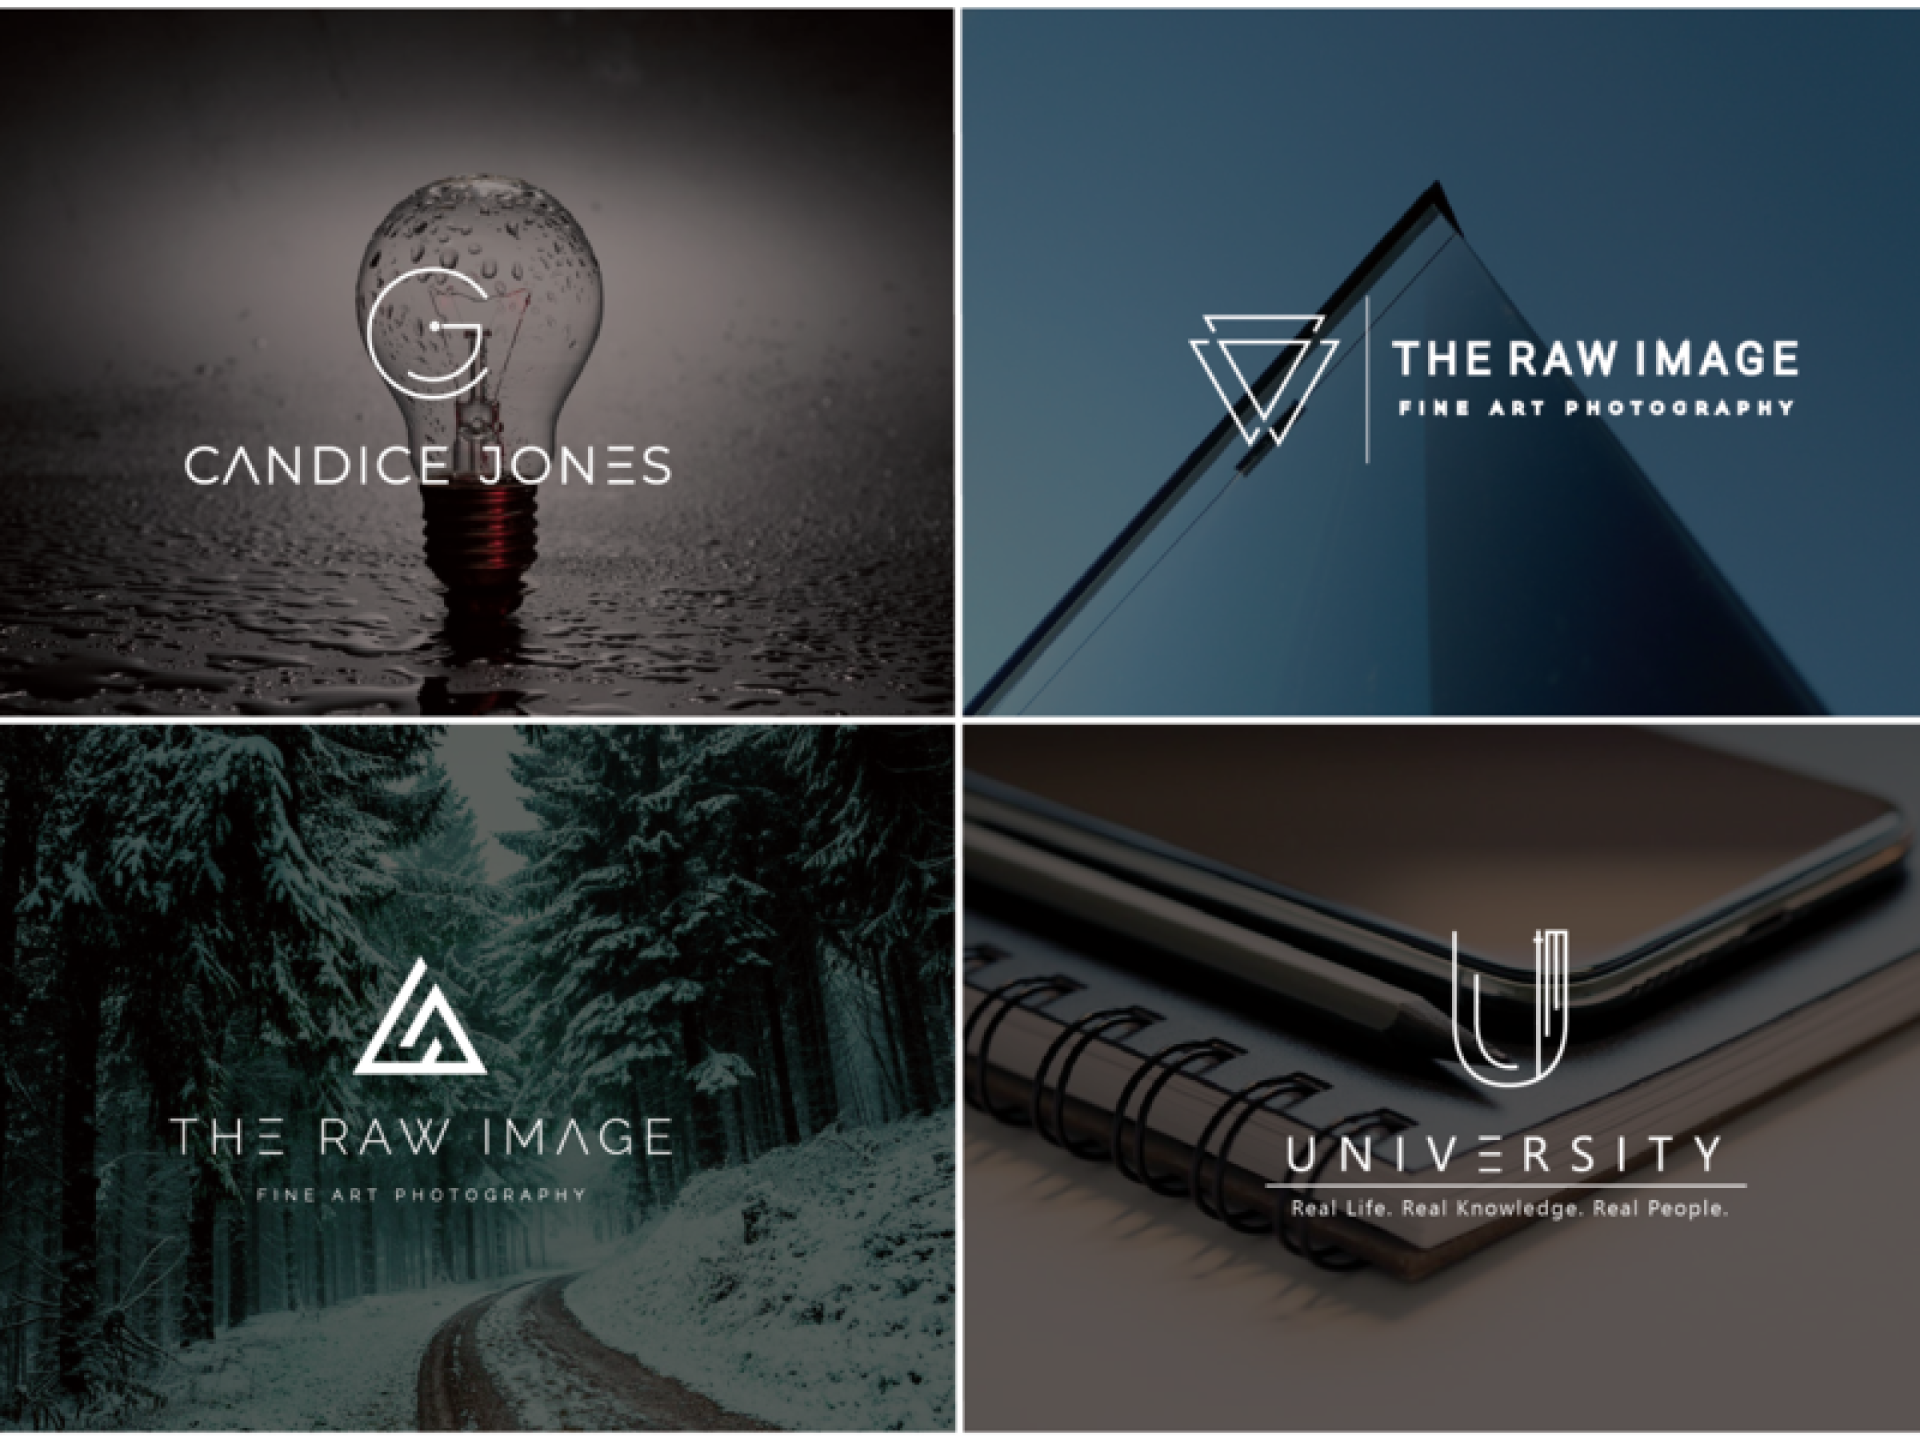 I will design a versatile logo for your brand or company